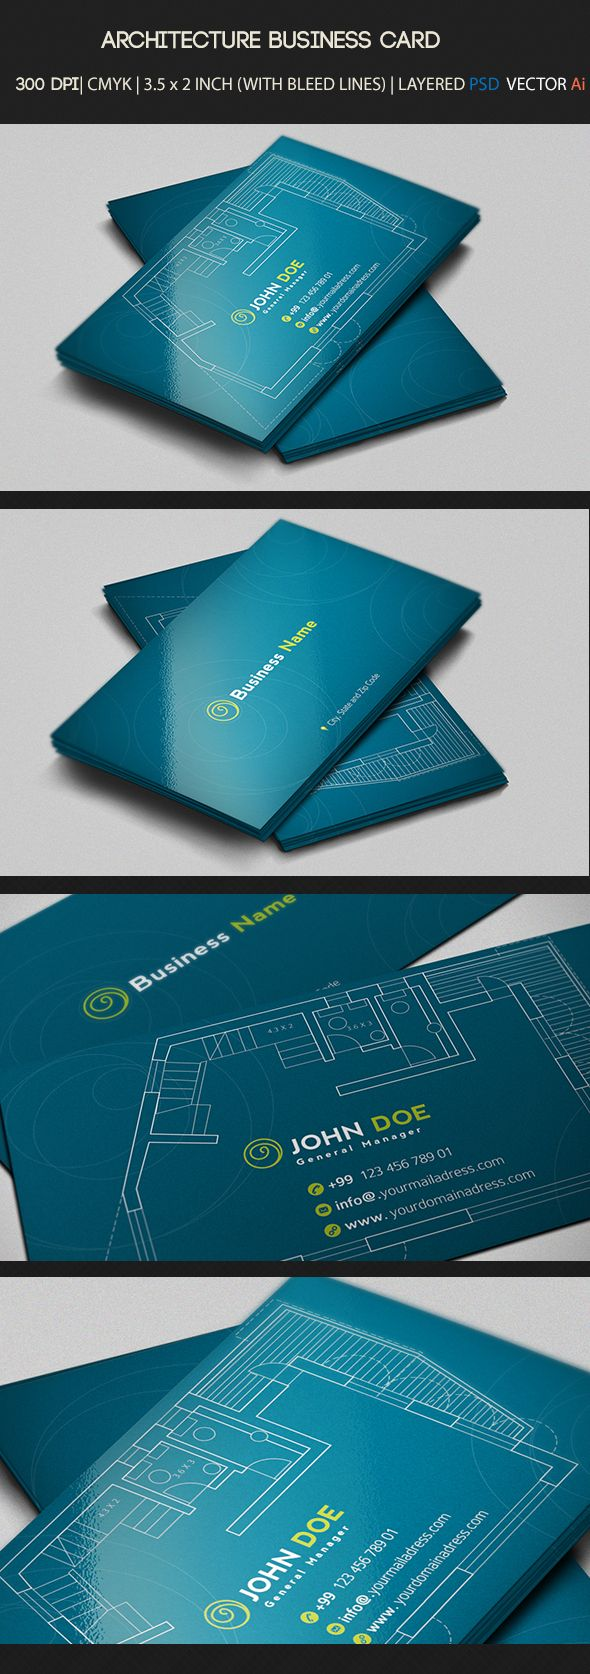 Architecture business card on behance blue inspire pinterest architecture business card on behance reheart Gallery